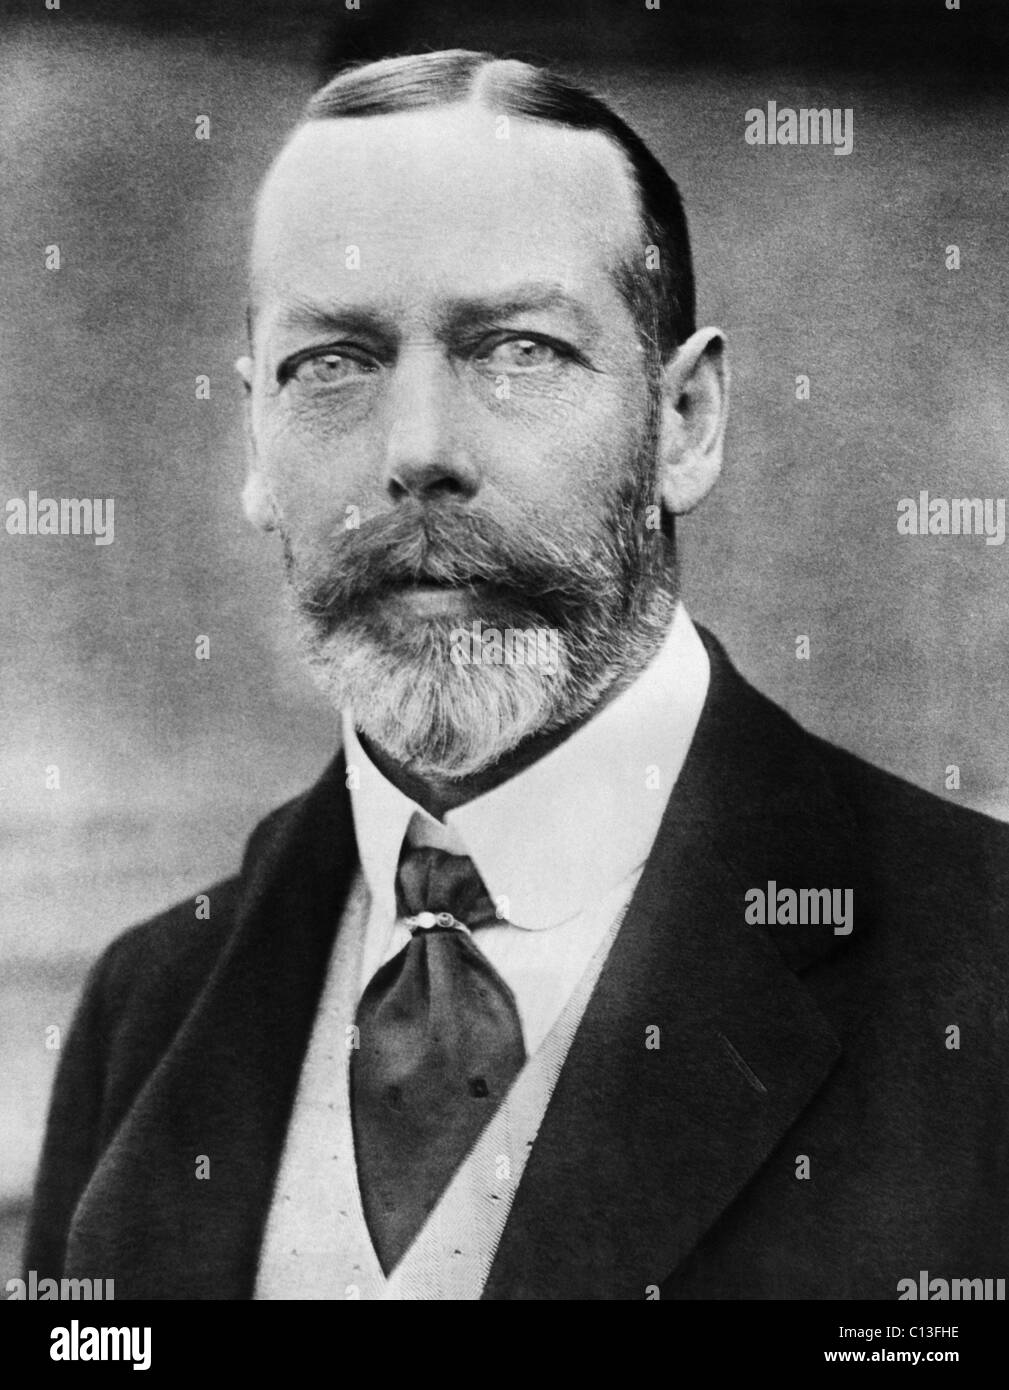 British Royalty. King George V of England, circa 1920s - Stock Image